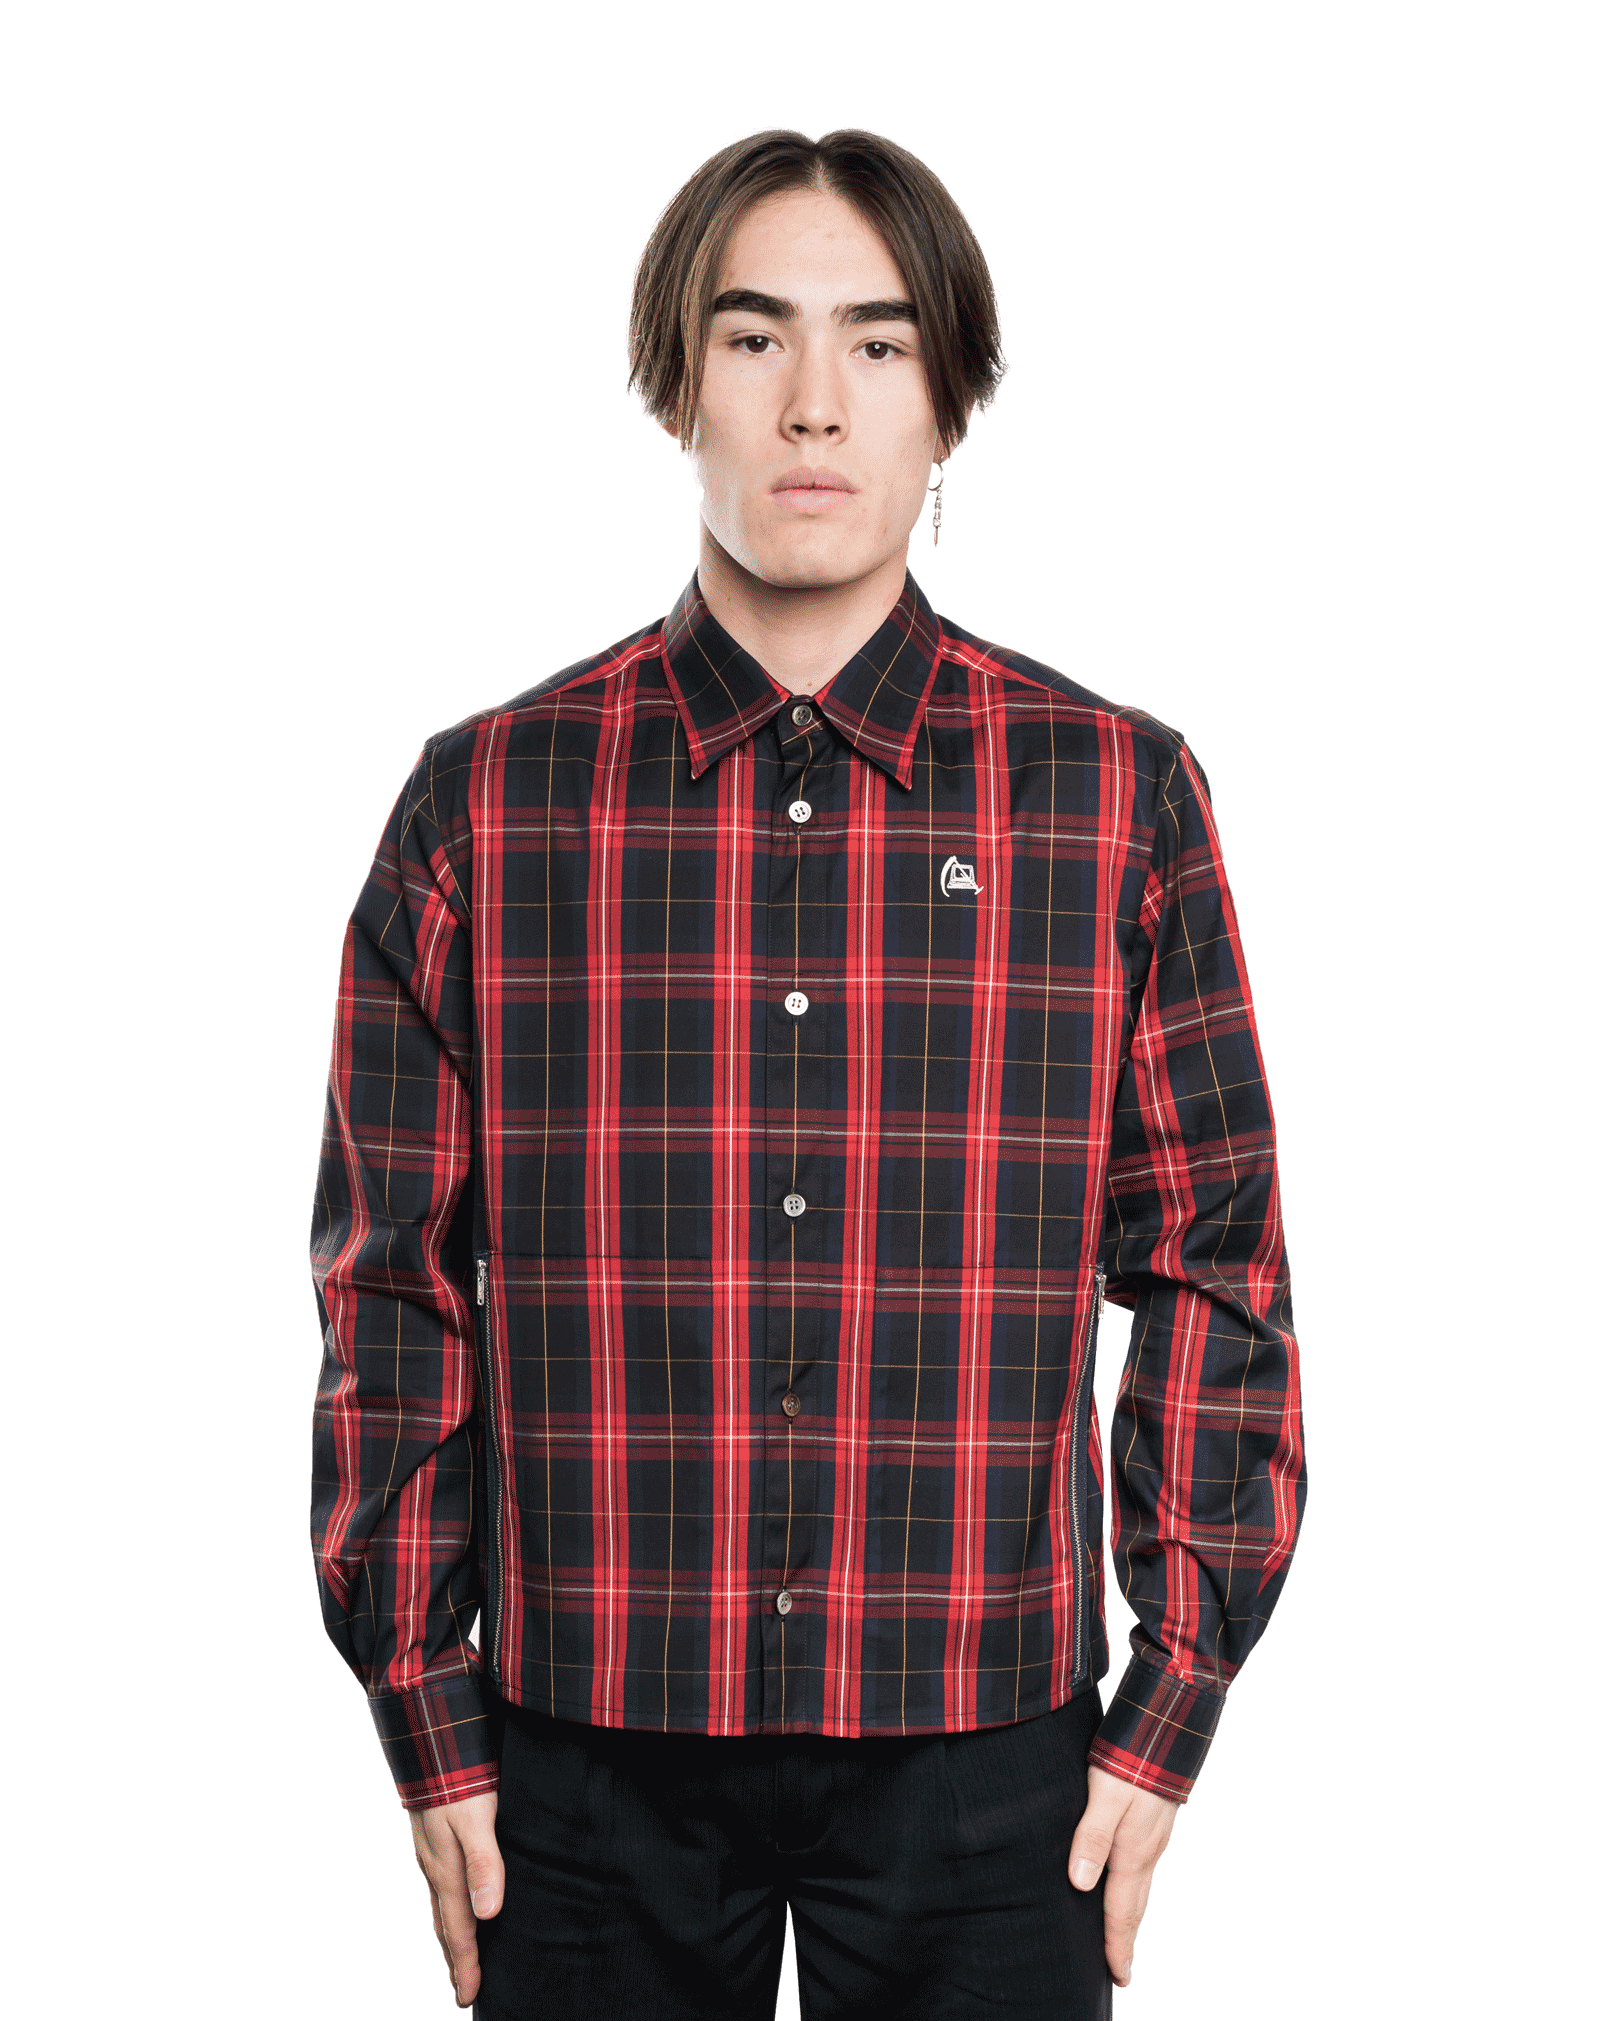 Undercover UCW4404 Shirt Navy Check